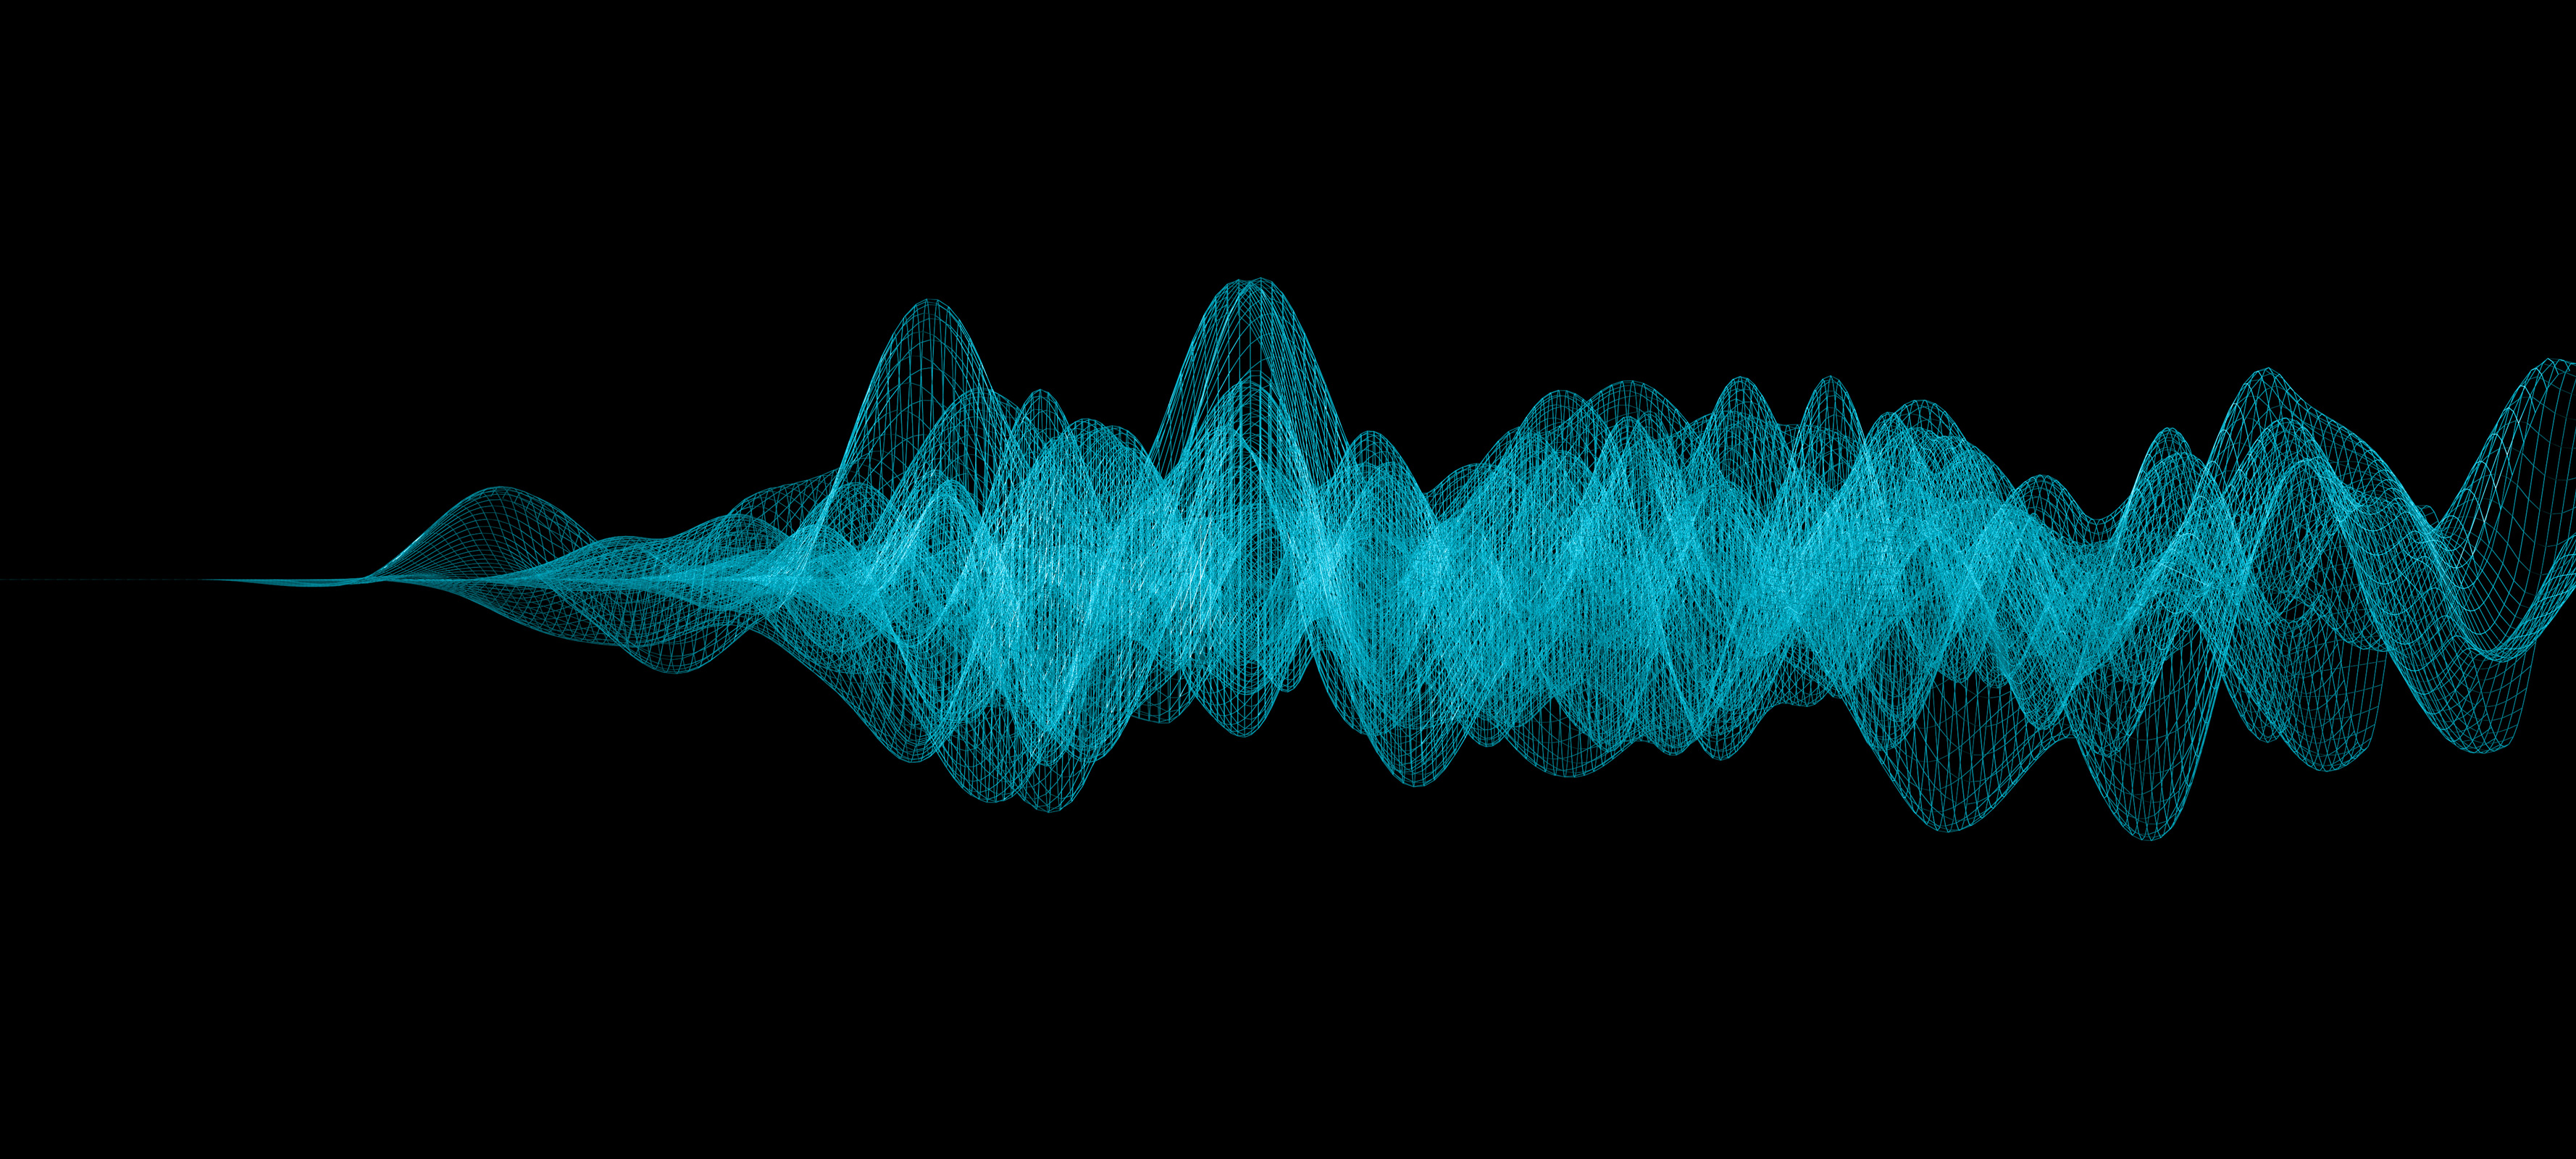 Sound wave visualization. Getty Images.